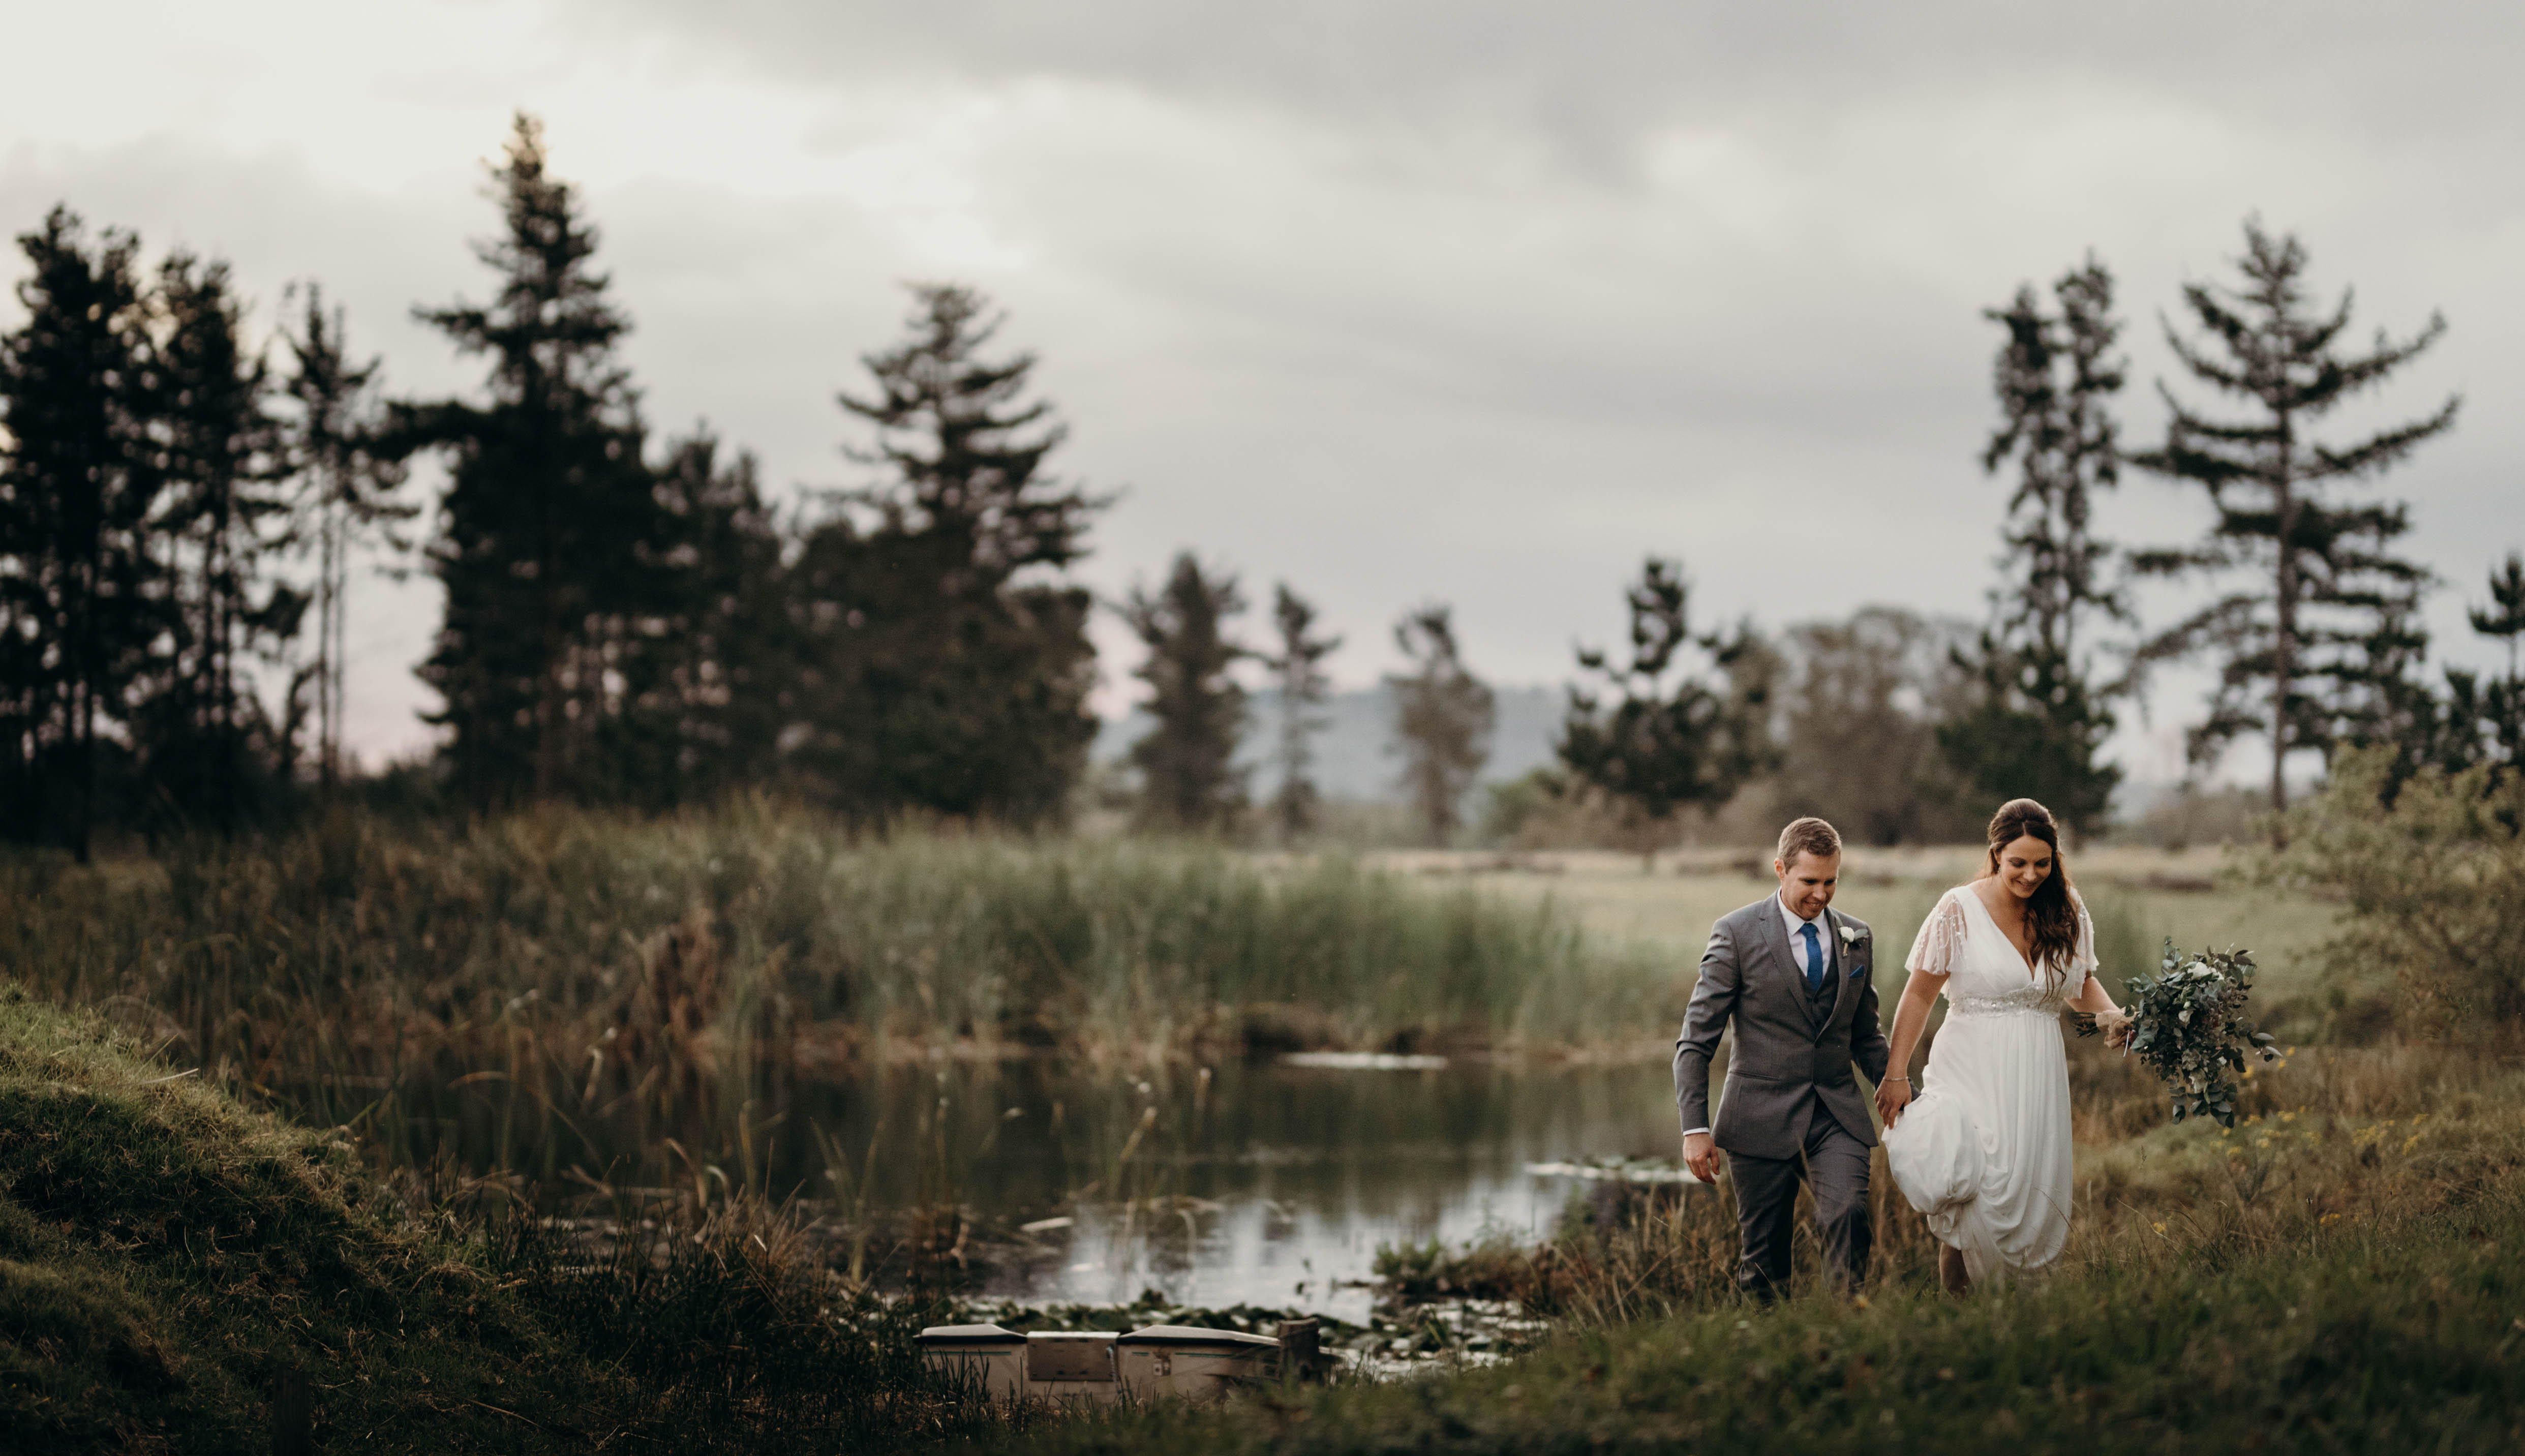 michelle brink, plettenberg bay, photographer, wedding venue, bella manga country escape, wedding, photography, garden route, besters bridal, boutique